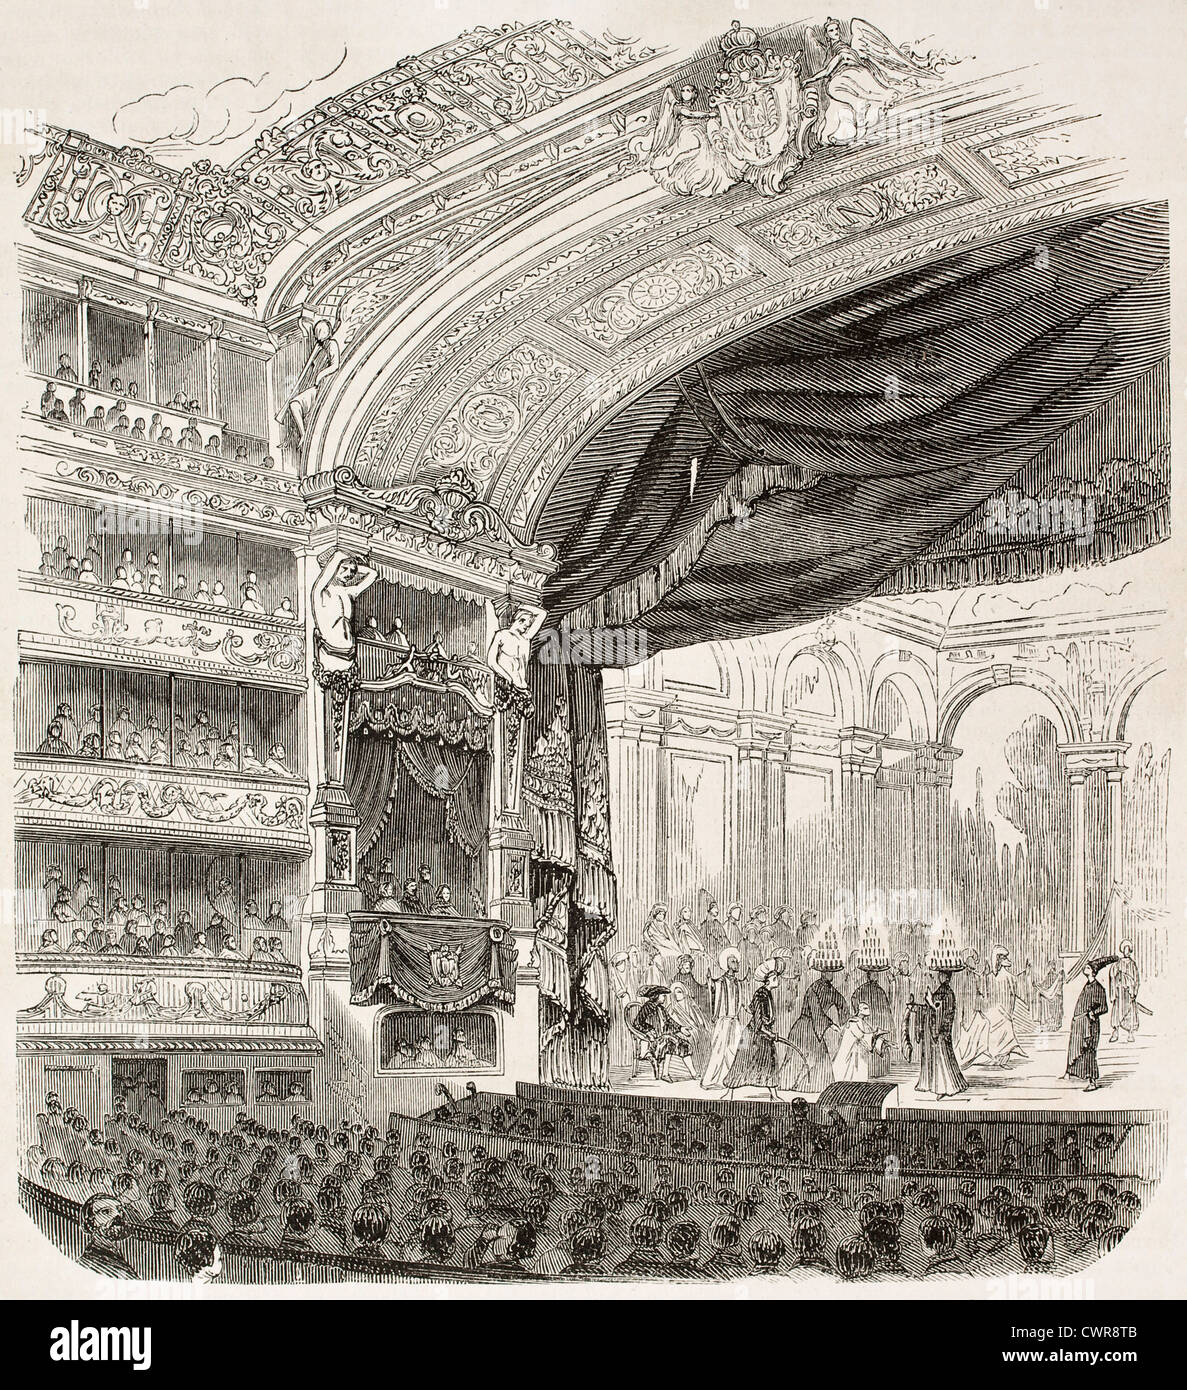 Comedie-Francaise theatre - Stock Image